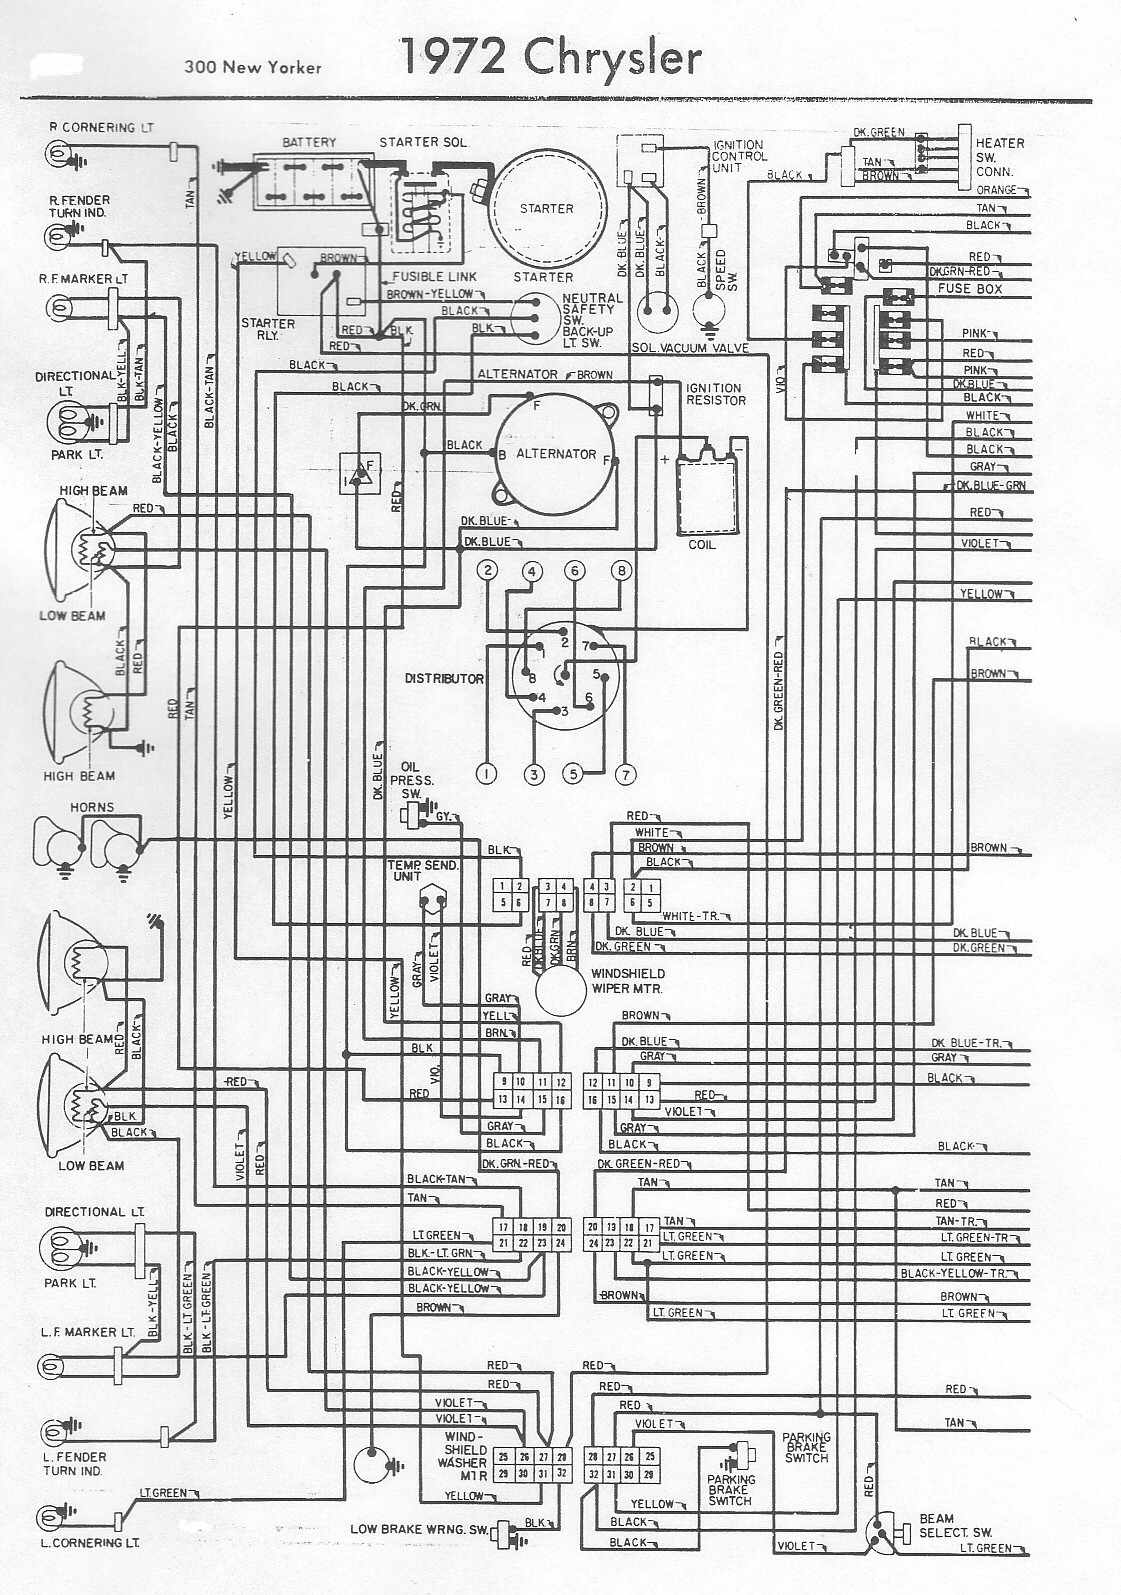 medium resolution of 2006 cadillac wiring diagrams wiring library 2008 dodge dakota electrical schematic 1956 cadillac wiring diagram simple